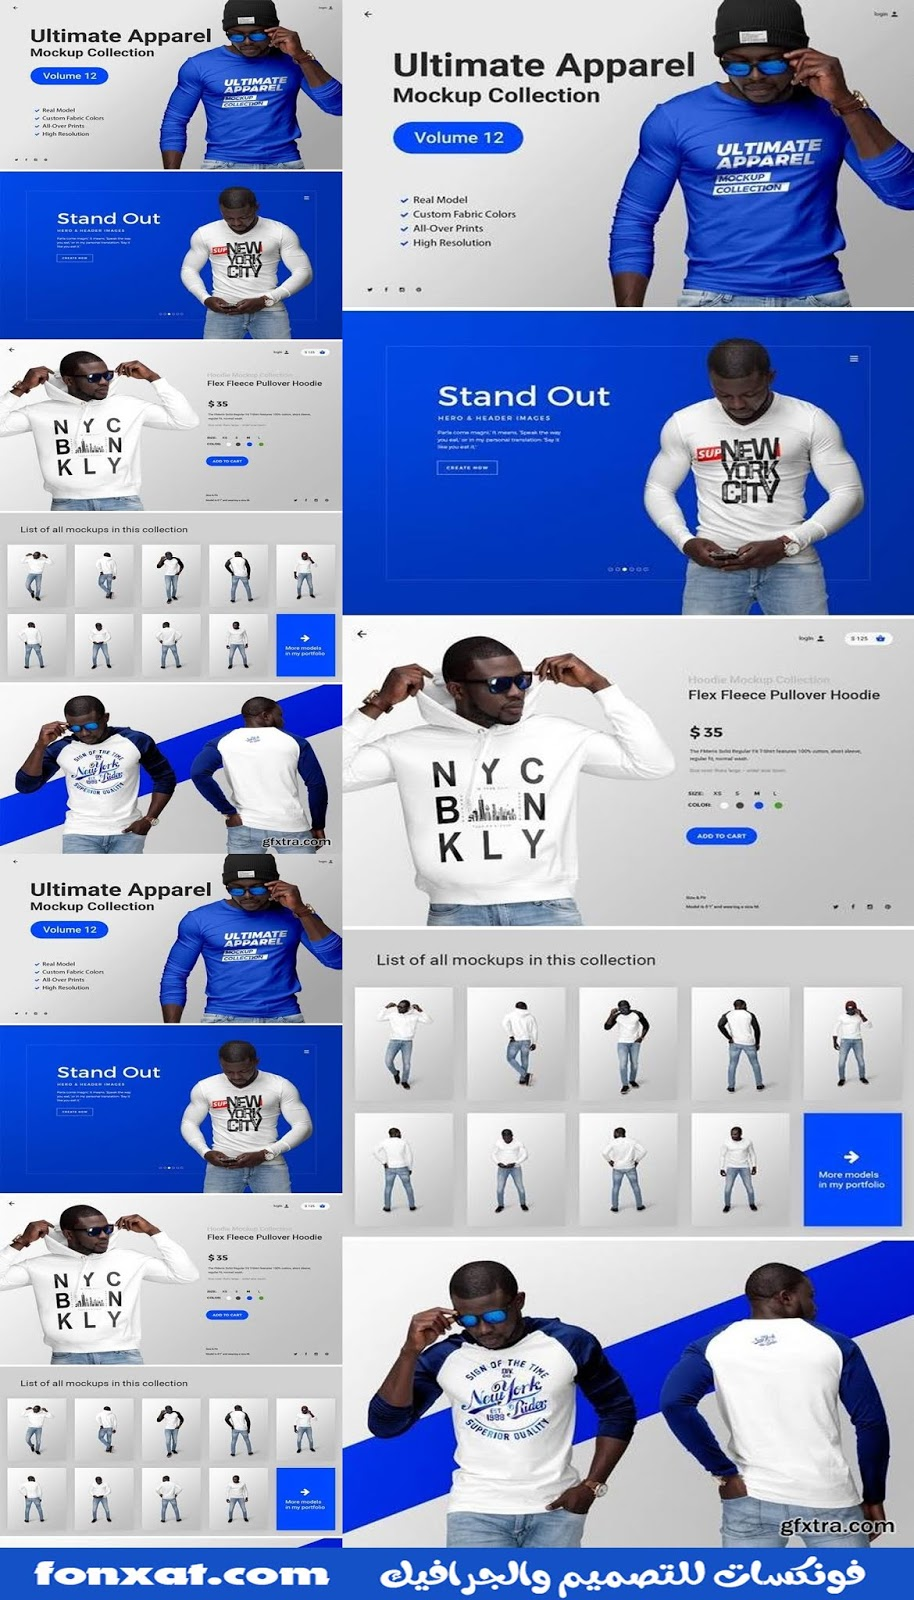 Mock-up Tshirt youth black skin to view Stand Out designs